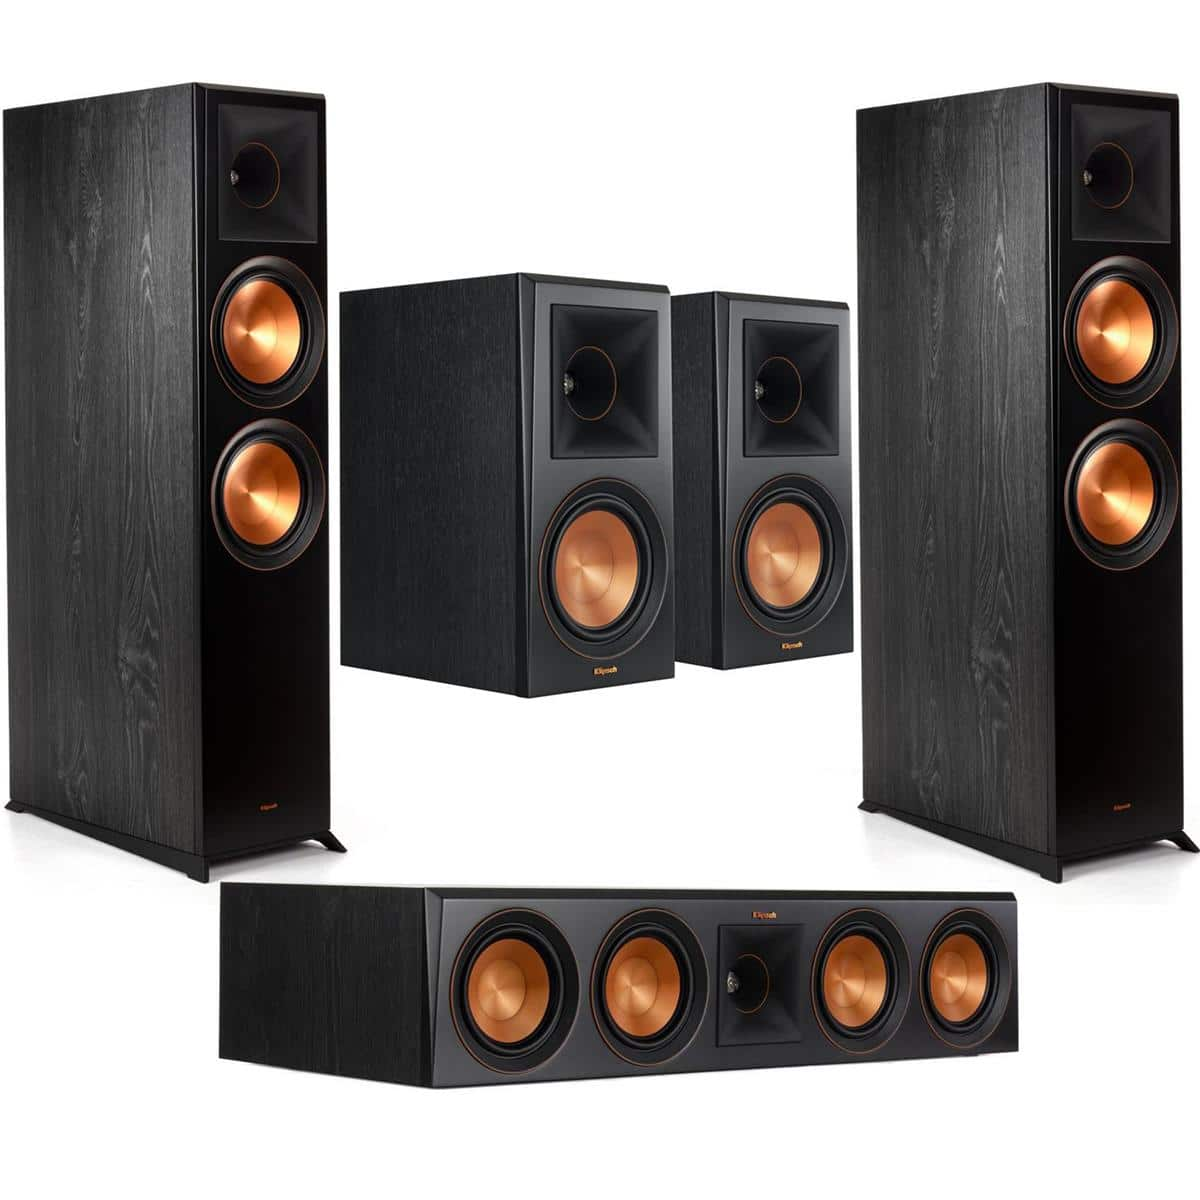 Klipsch Reference Premiere Speakers:2x RP-8060FA + 2x RP-600M + RP-504C $1799 + free s/h at Adorama